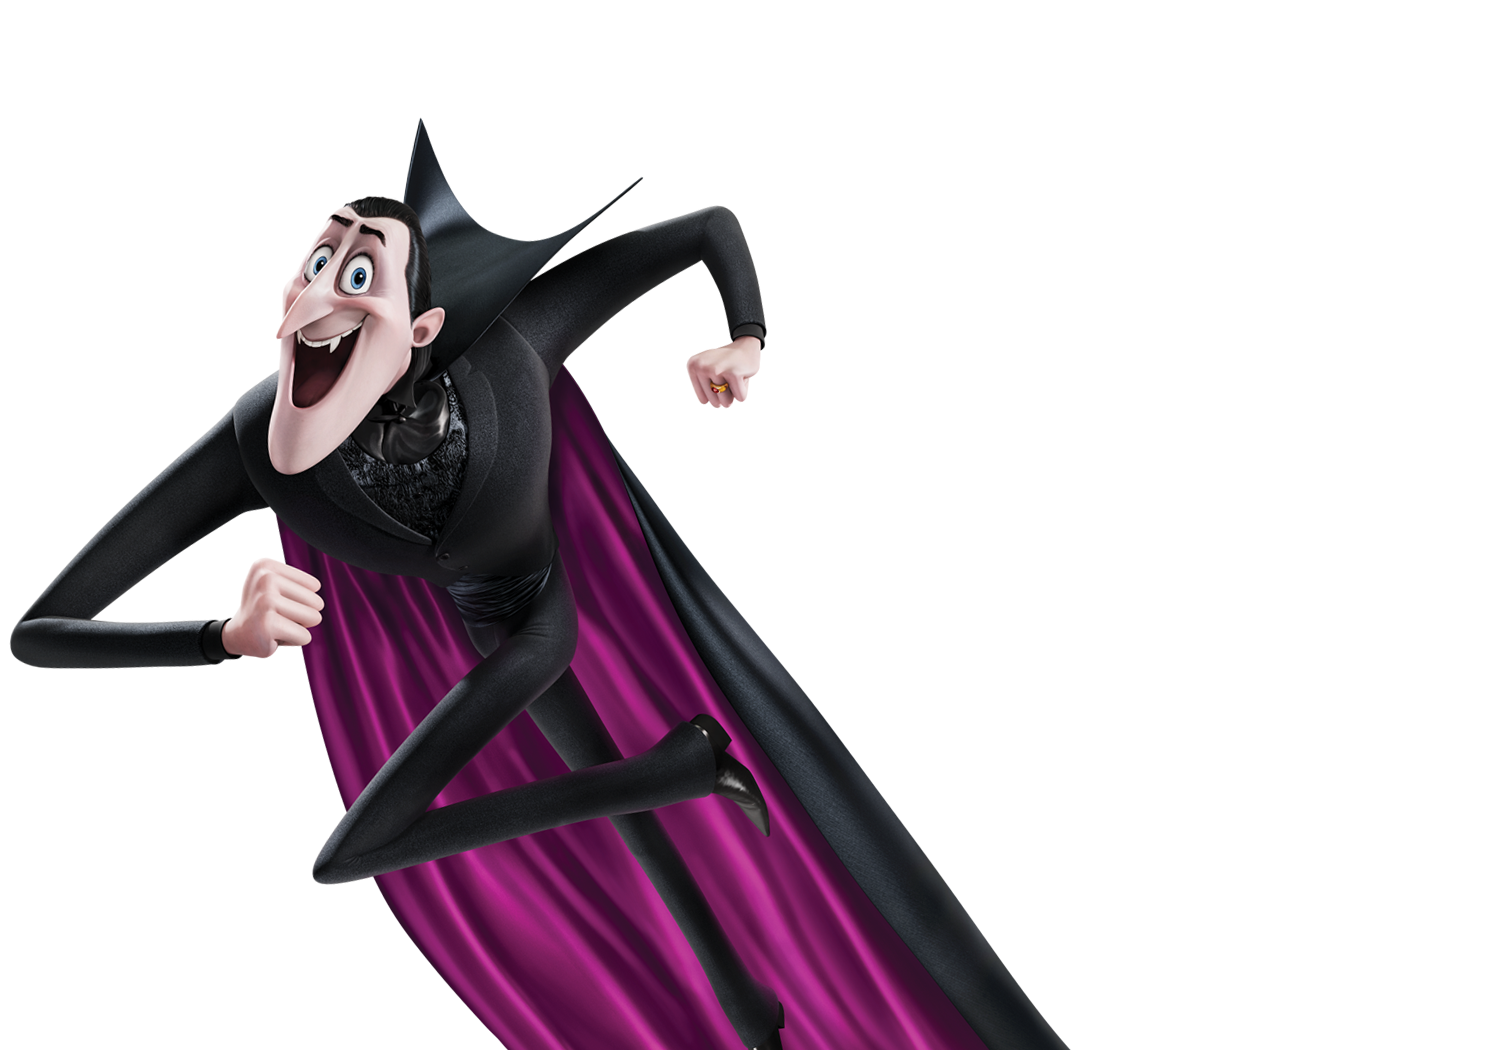 Count Purple Dracula Hotel Character Fictional Pocket PNG Image